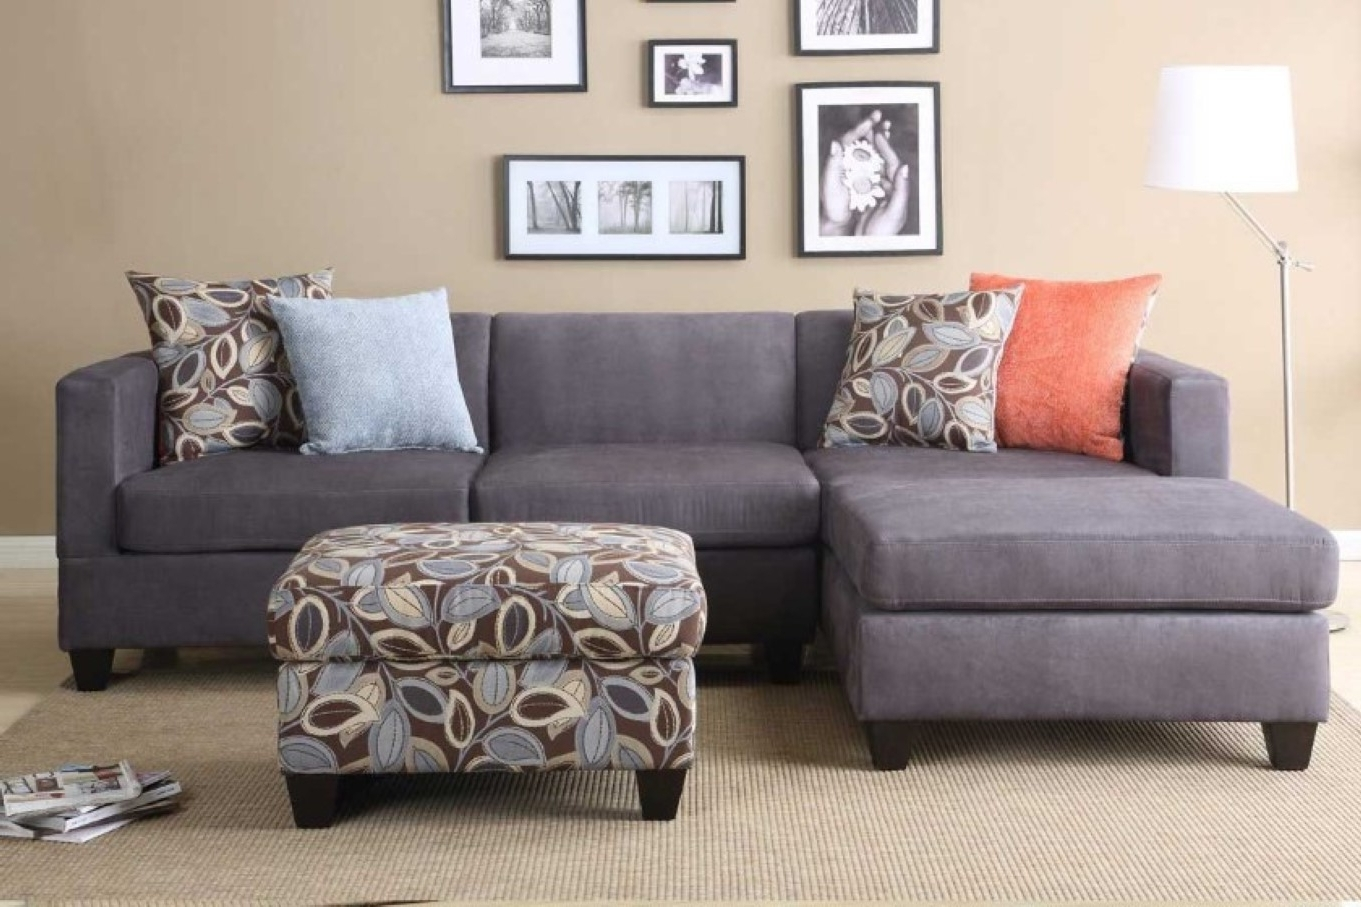 Incredible Microfiber Sleeper Sofa Top Home Design Ideas With Grey Regarding Most Up To Date 3 Piece Sectional Sleeper Sofas (View 6 of 20)